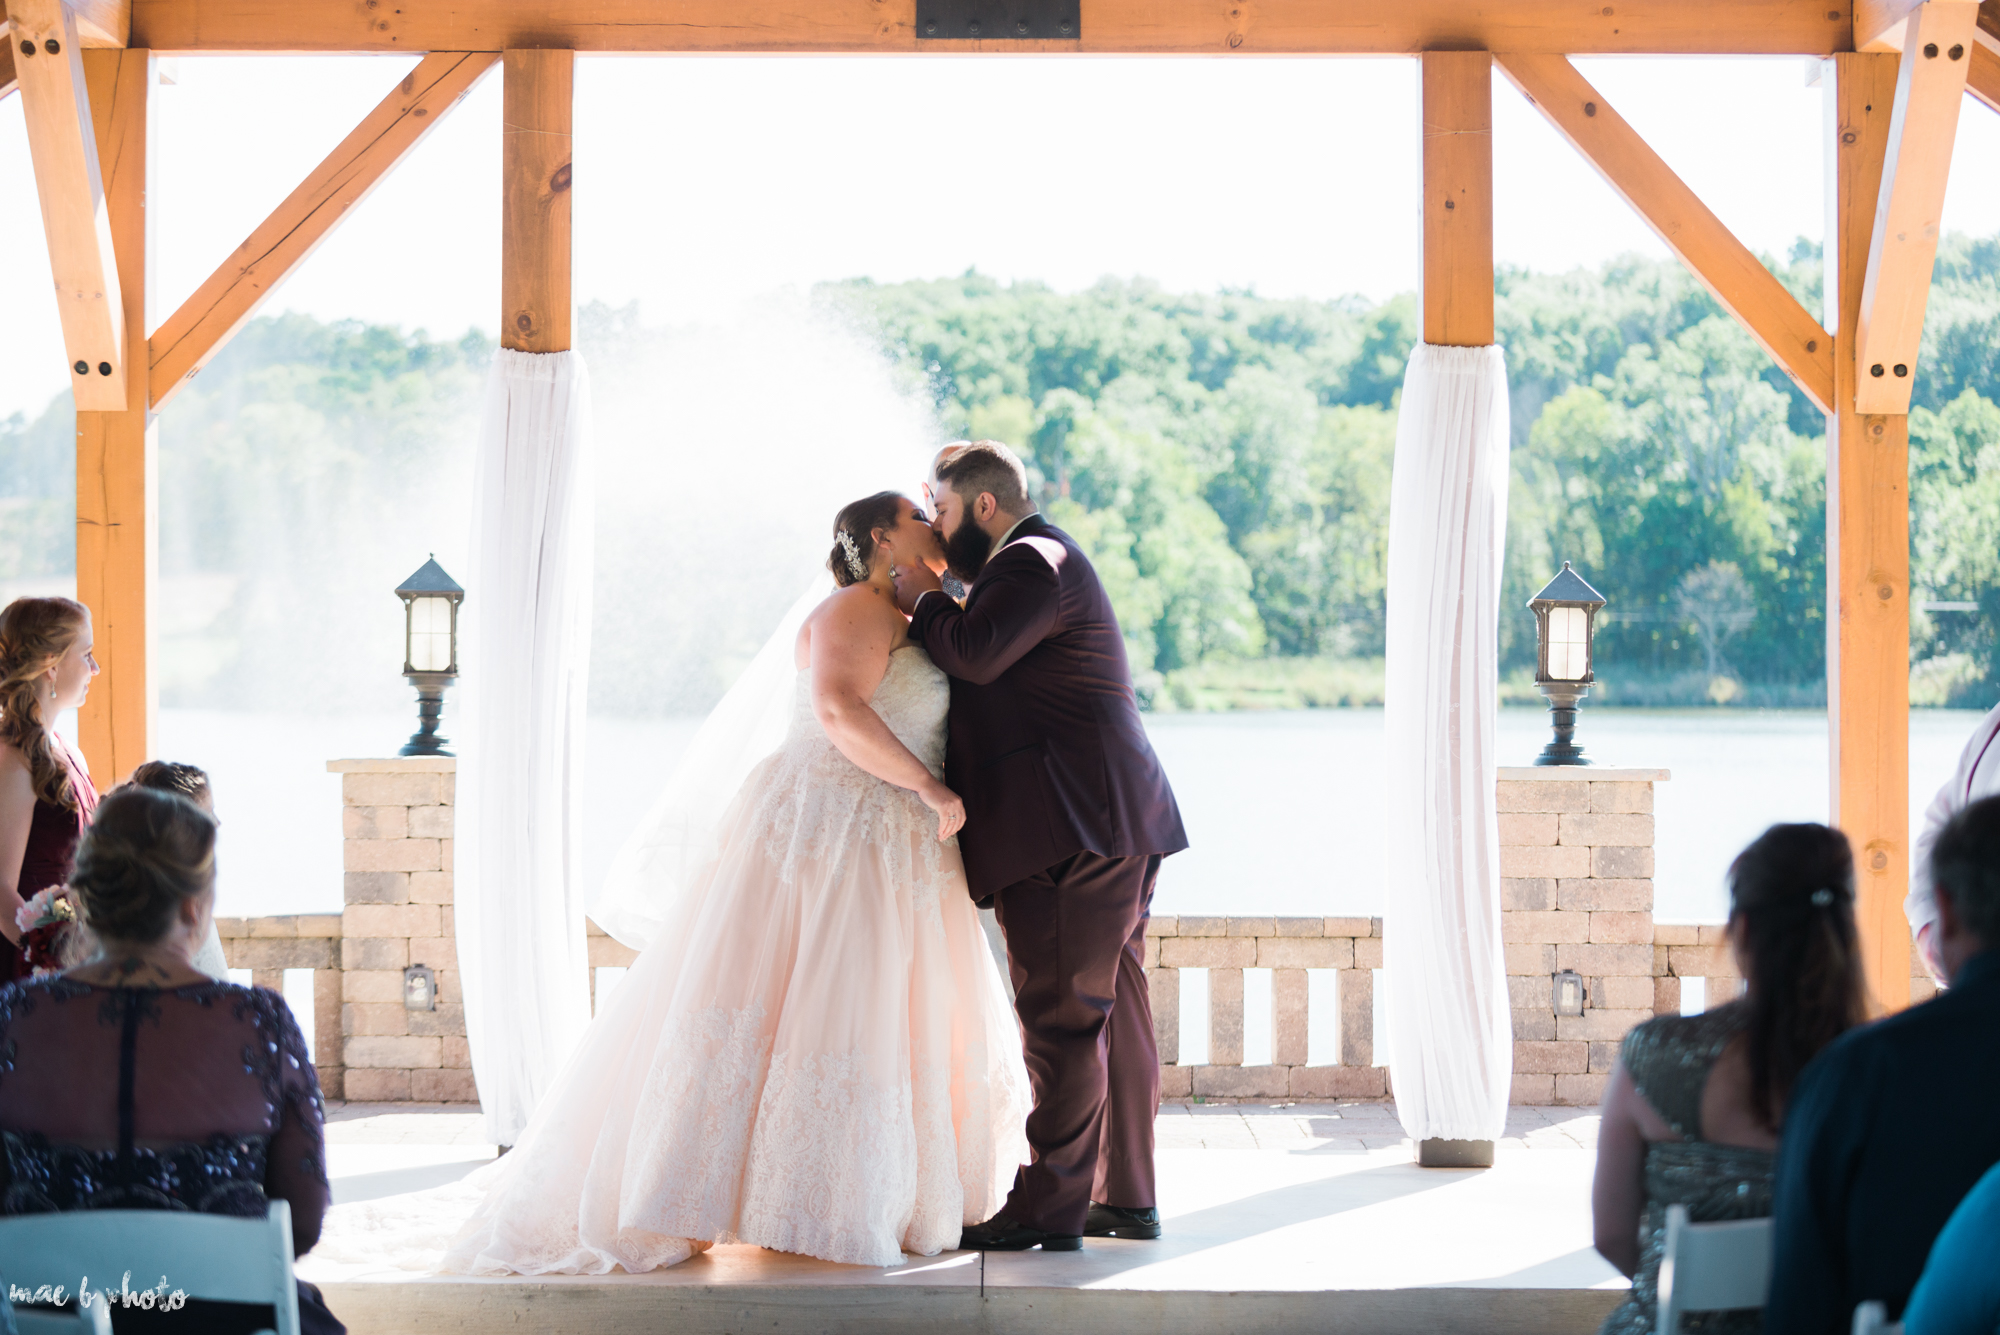 Amber & Kyle's Rustic Barn Wedding at SNPJ in Enon Valley, PA by Mae B Photo-46.jpg